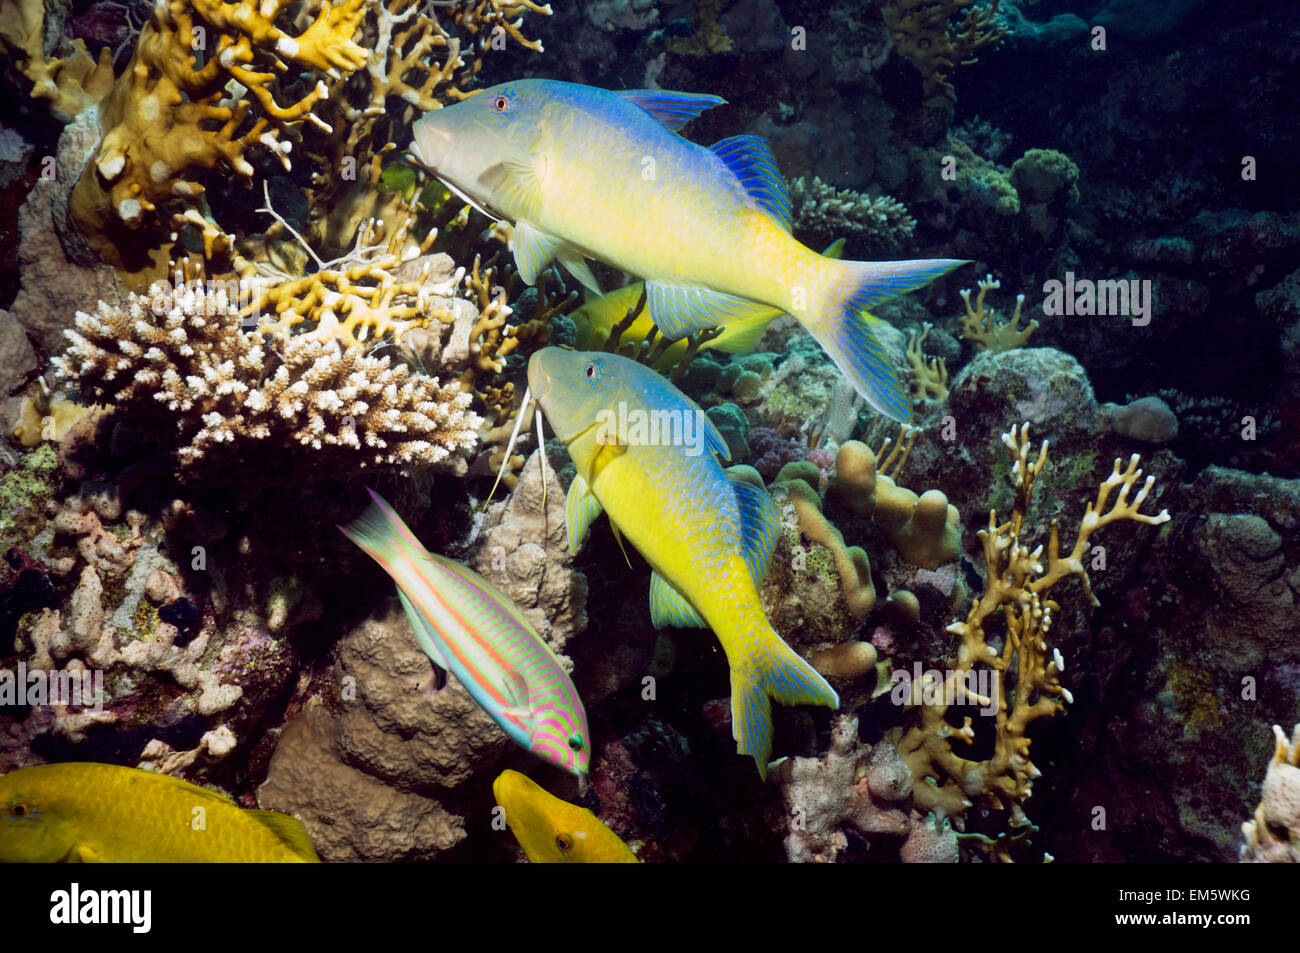 Yellowsaddle goatfish (Parupeneus cyclostomus) gang hunting over coral reef.  Egypt, Red Sea. - Stock Image